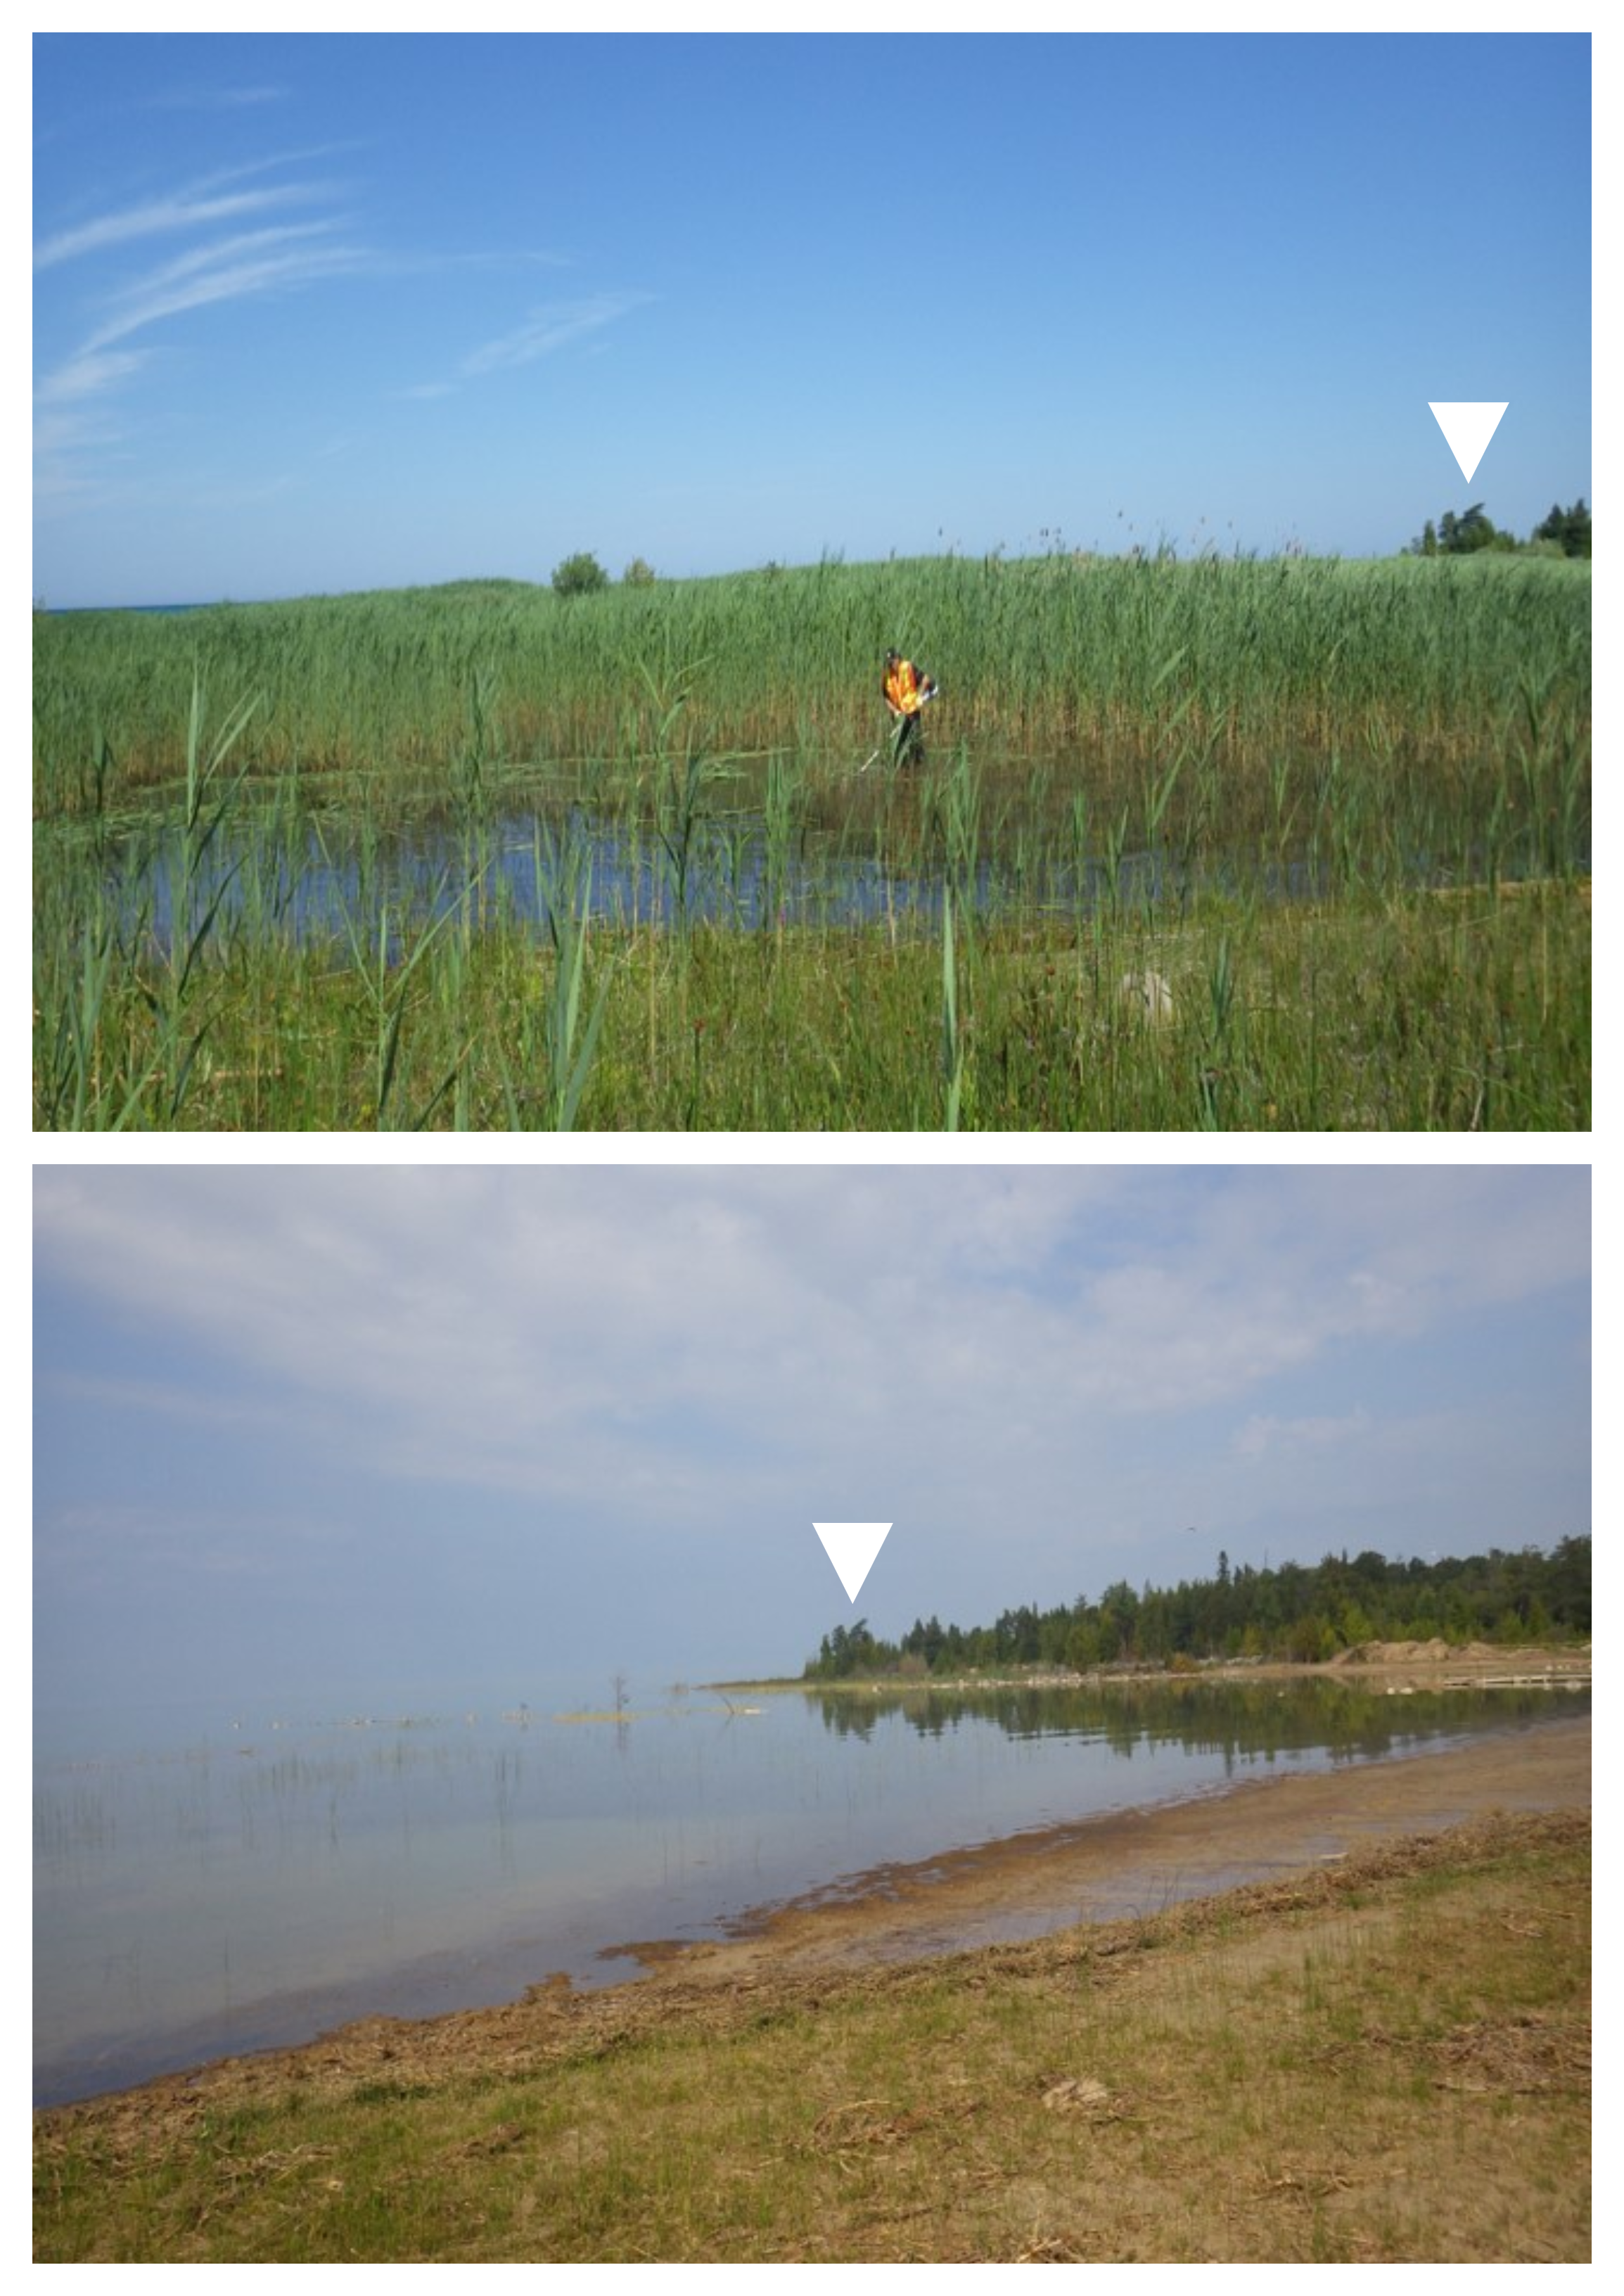 Before and after photos at the Brucedale Conservation Authority campground. White triangles show landmark markers.